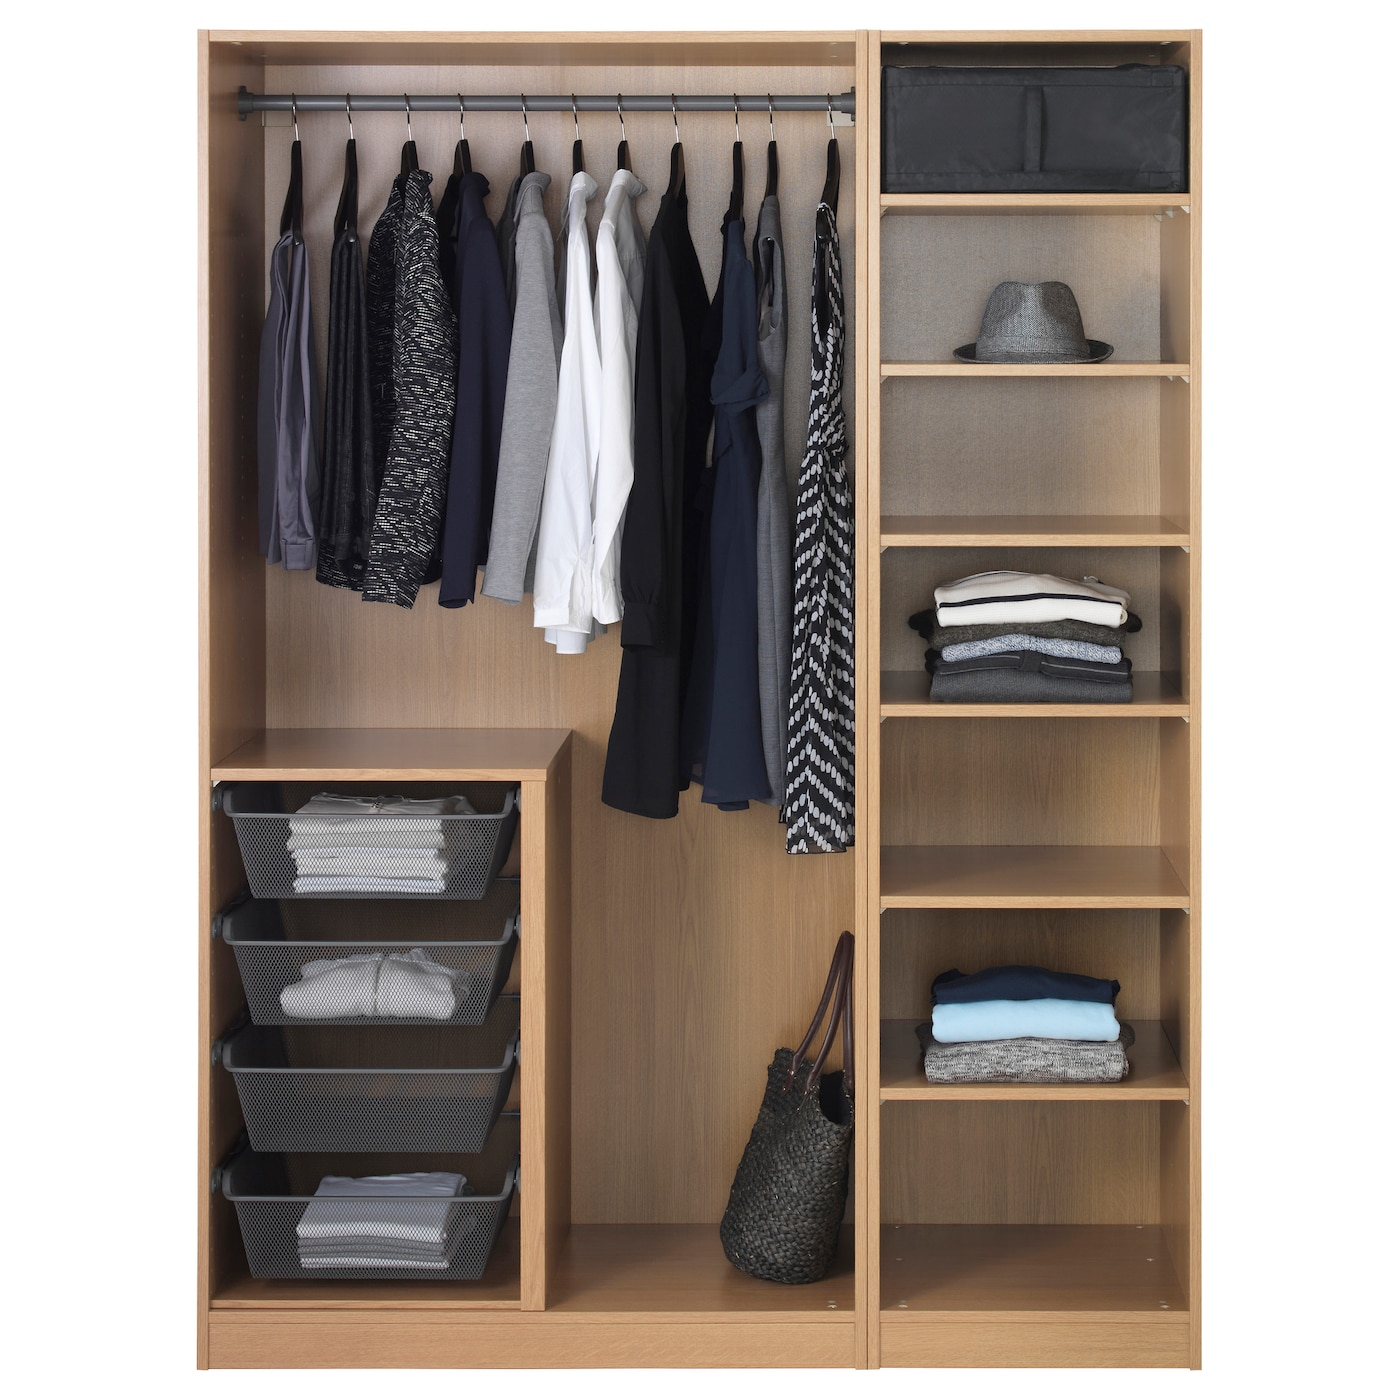 pax wardrobe oak effect nexus vikedal 150 x 60 x 201 cm ikea. Black Bedroom Furniture Sets. Home Design Ideas